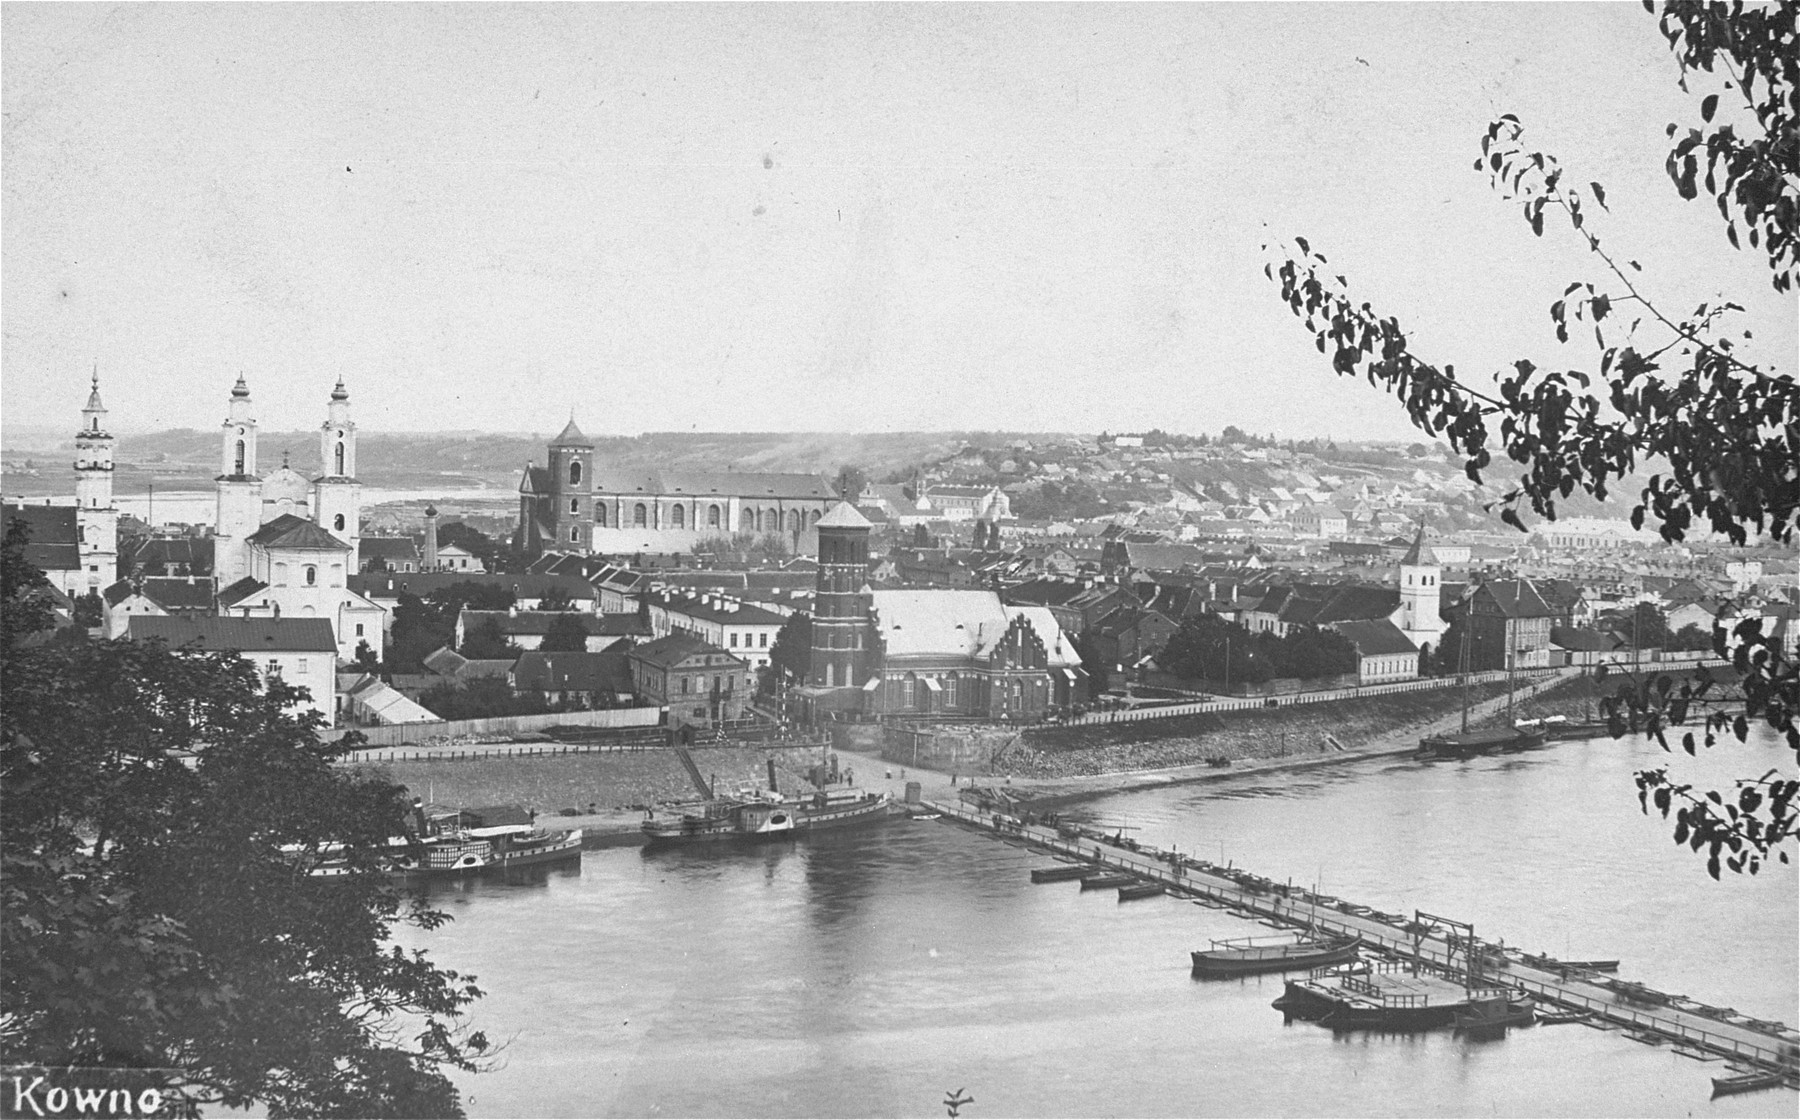 View of the city of Kaunas taken from across the river.